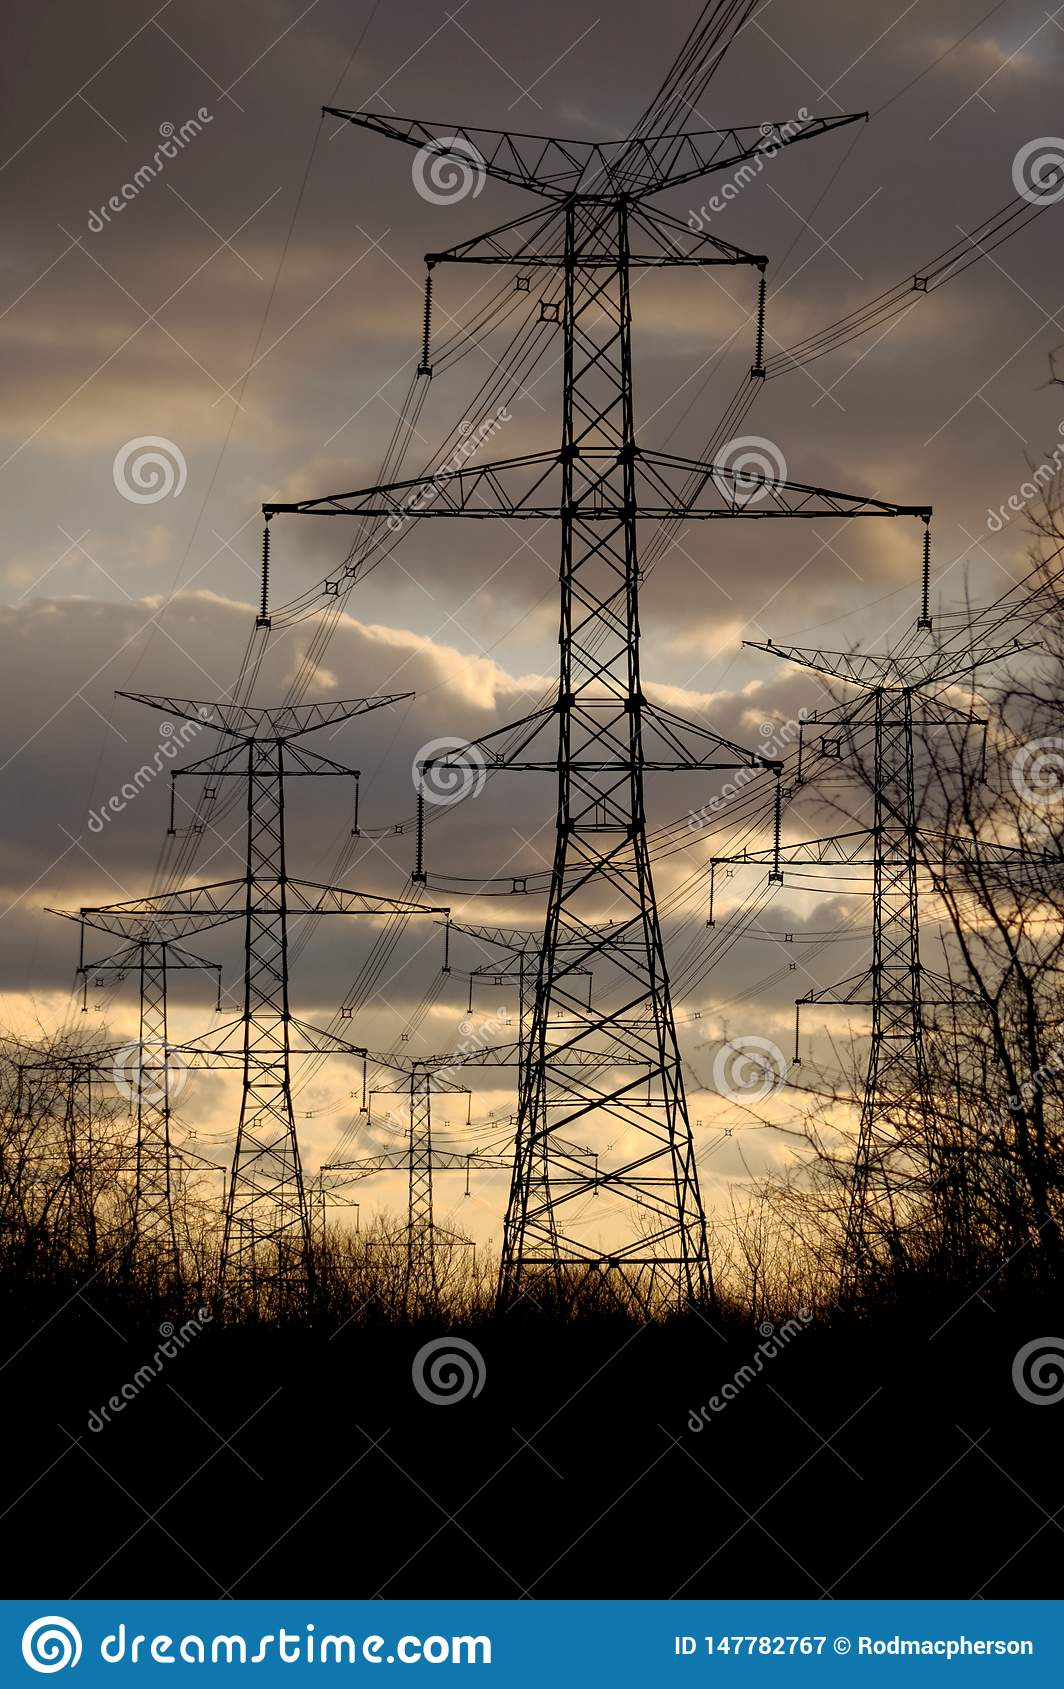 Power - Electricity Pylons and Lines at Sunset